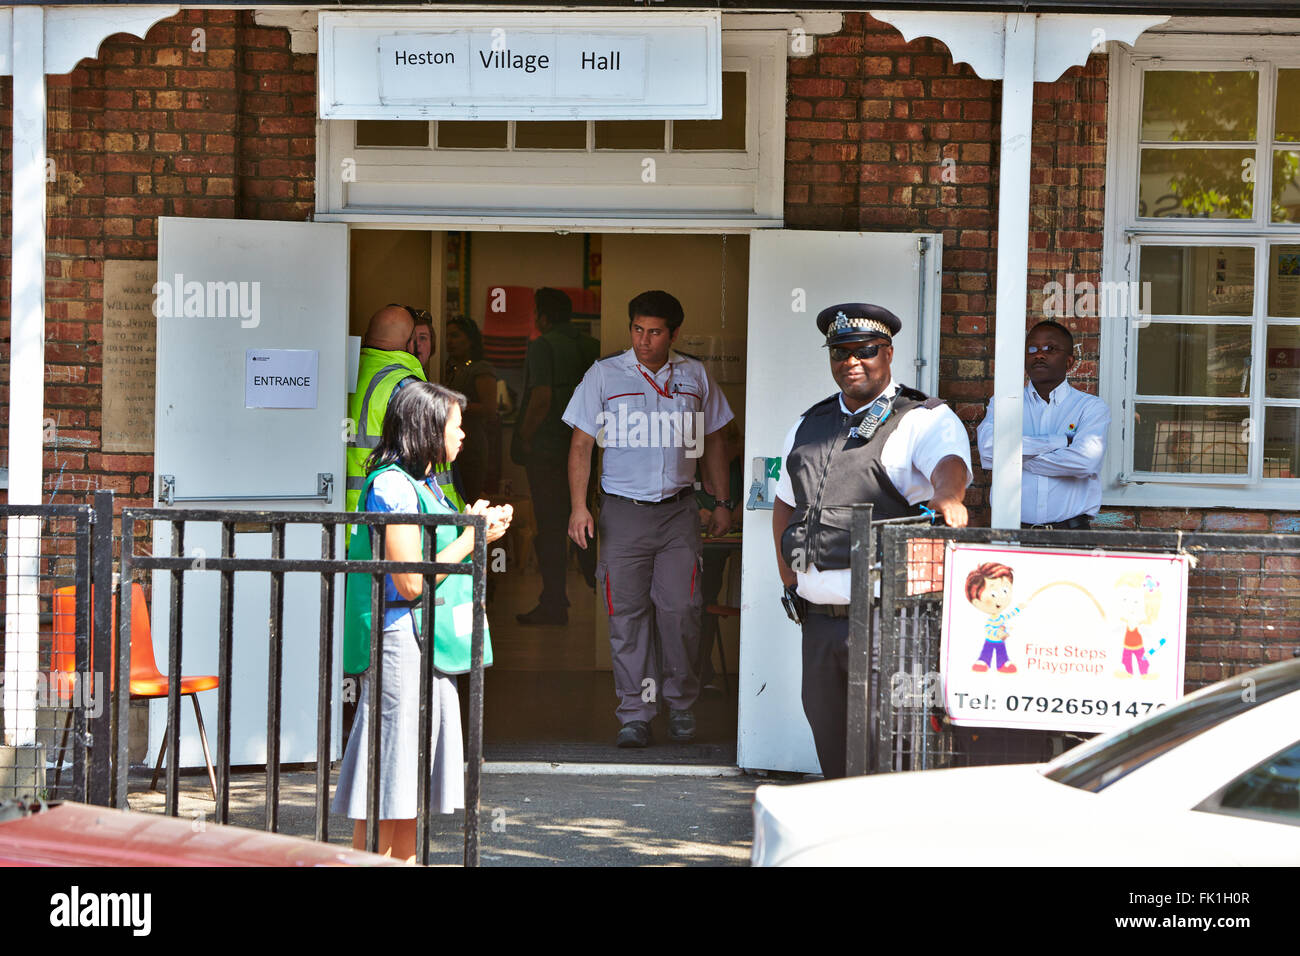 Local residents evacuated to the village hall following a fatal fire in a flat above a shop on New Heston Road. - Stock Image